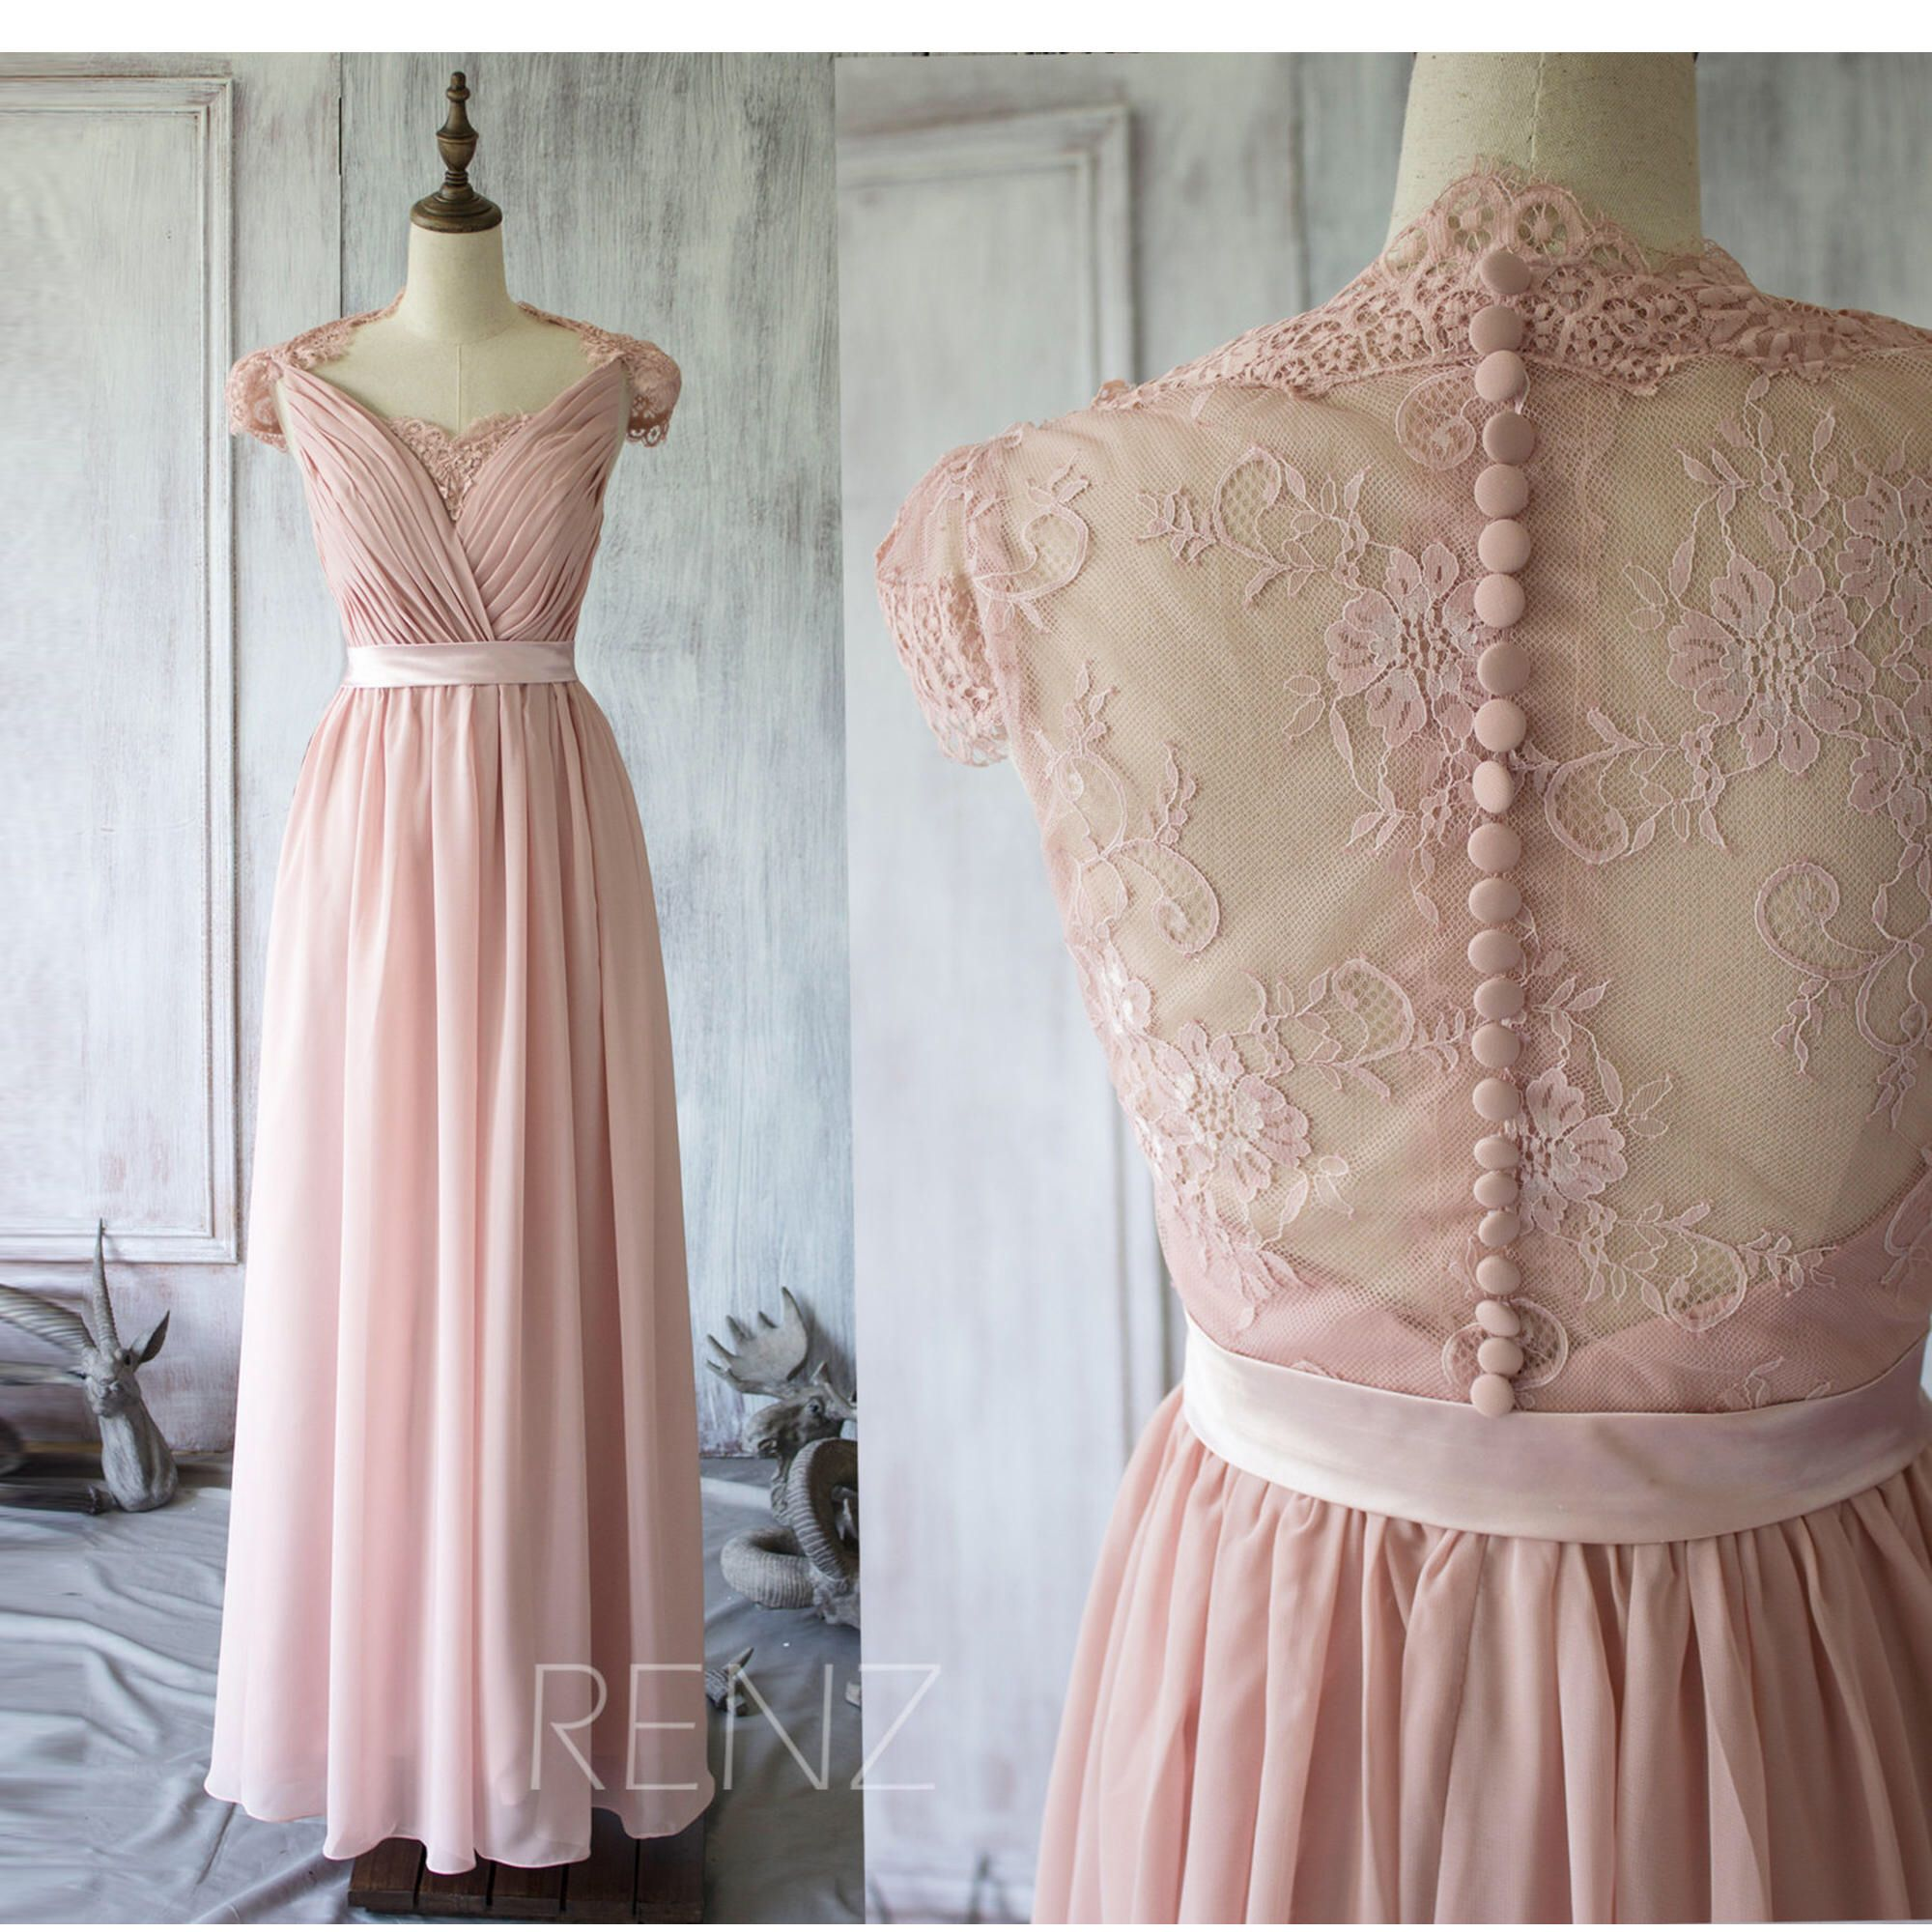 Blush chiffon lace bridesmaid dress cap sleeve wedding dress party